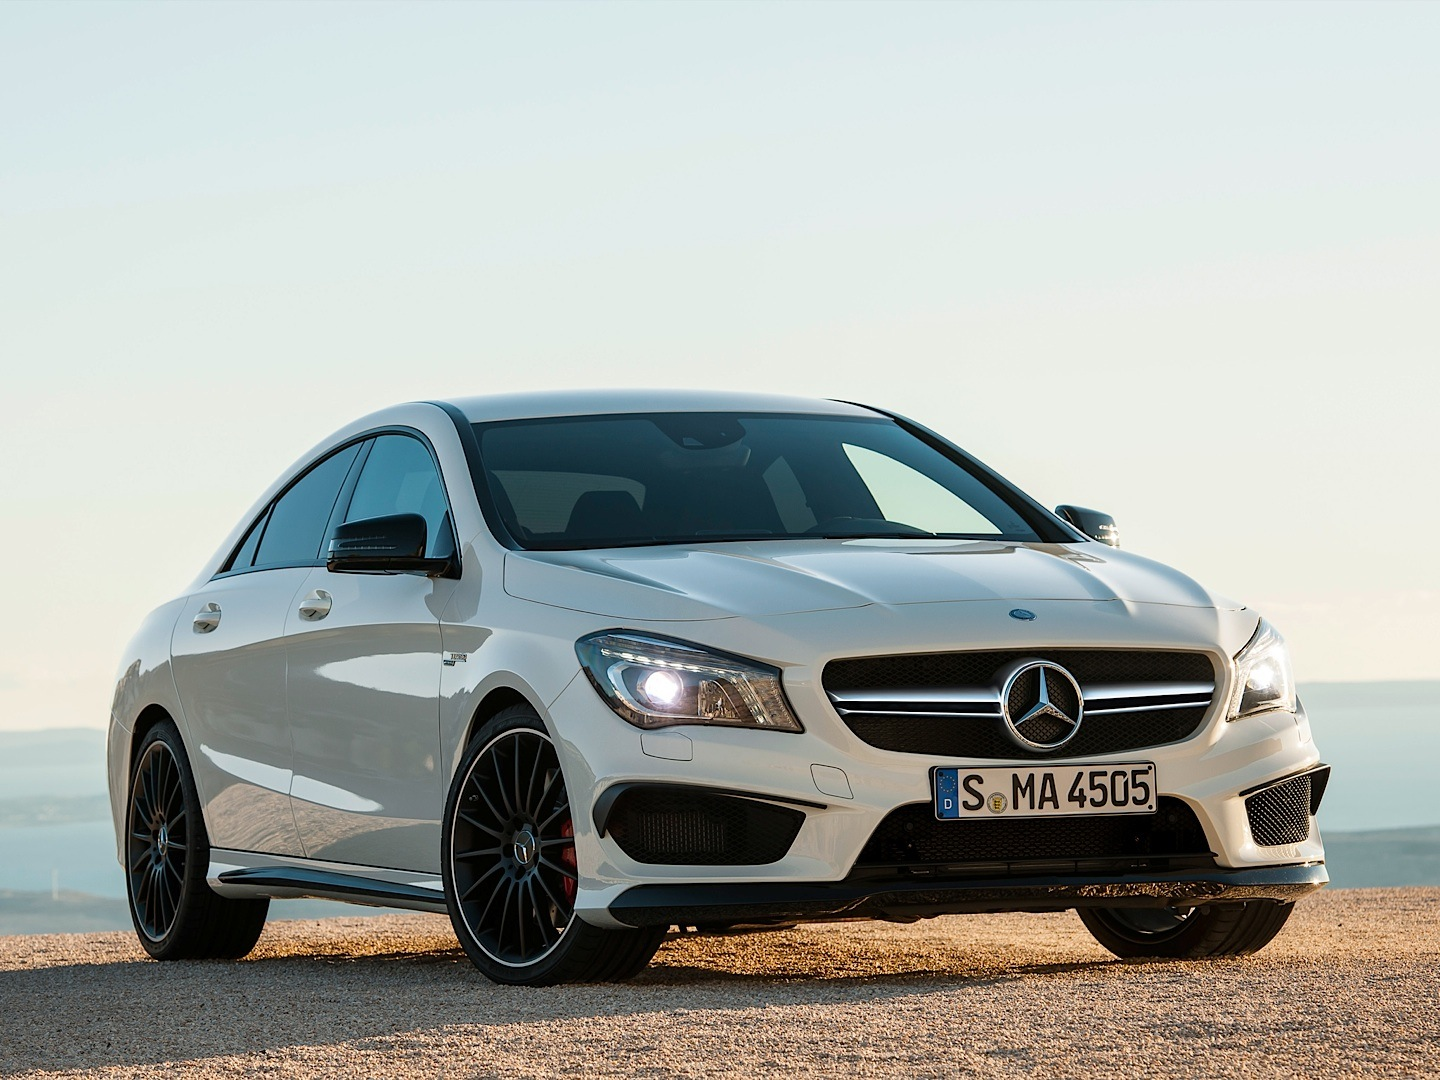 Mercedes benz cla 45 amg driven by vadimauto autoevolution for Mercedes benz amg cla 45